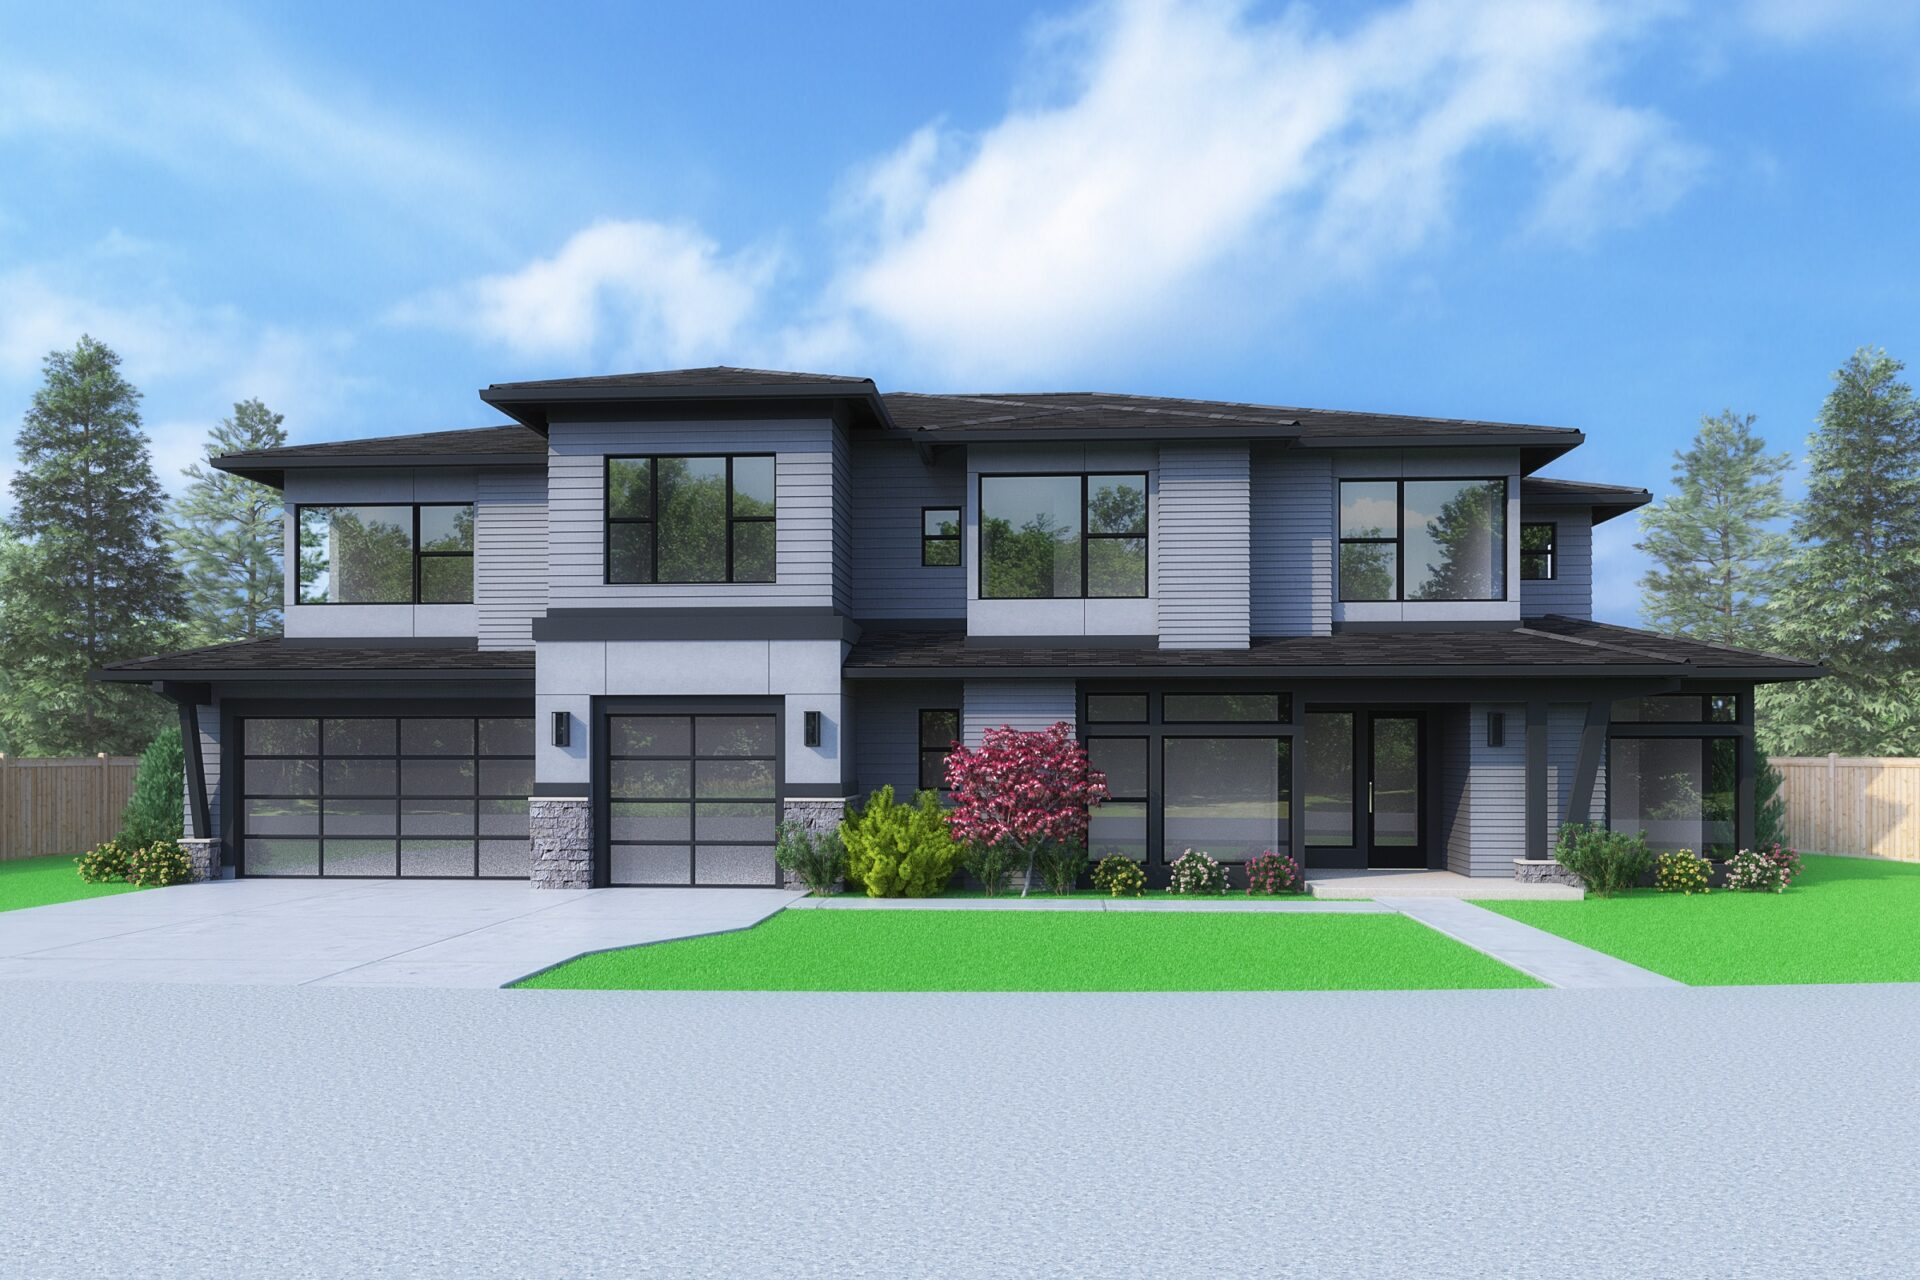 View our new luxury home construction on 14020 Se 38th St, in Bellevue, WA from MN Custom Homes